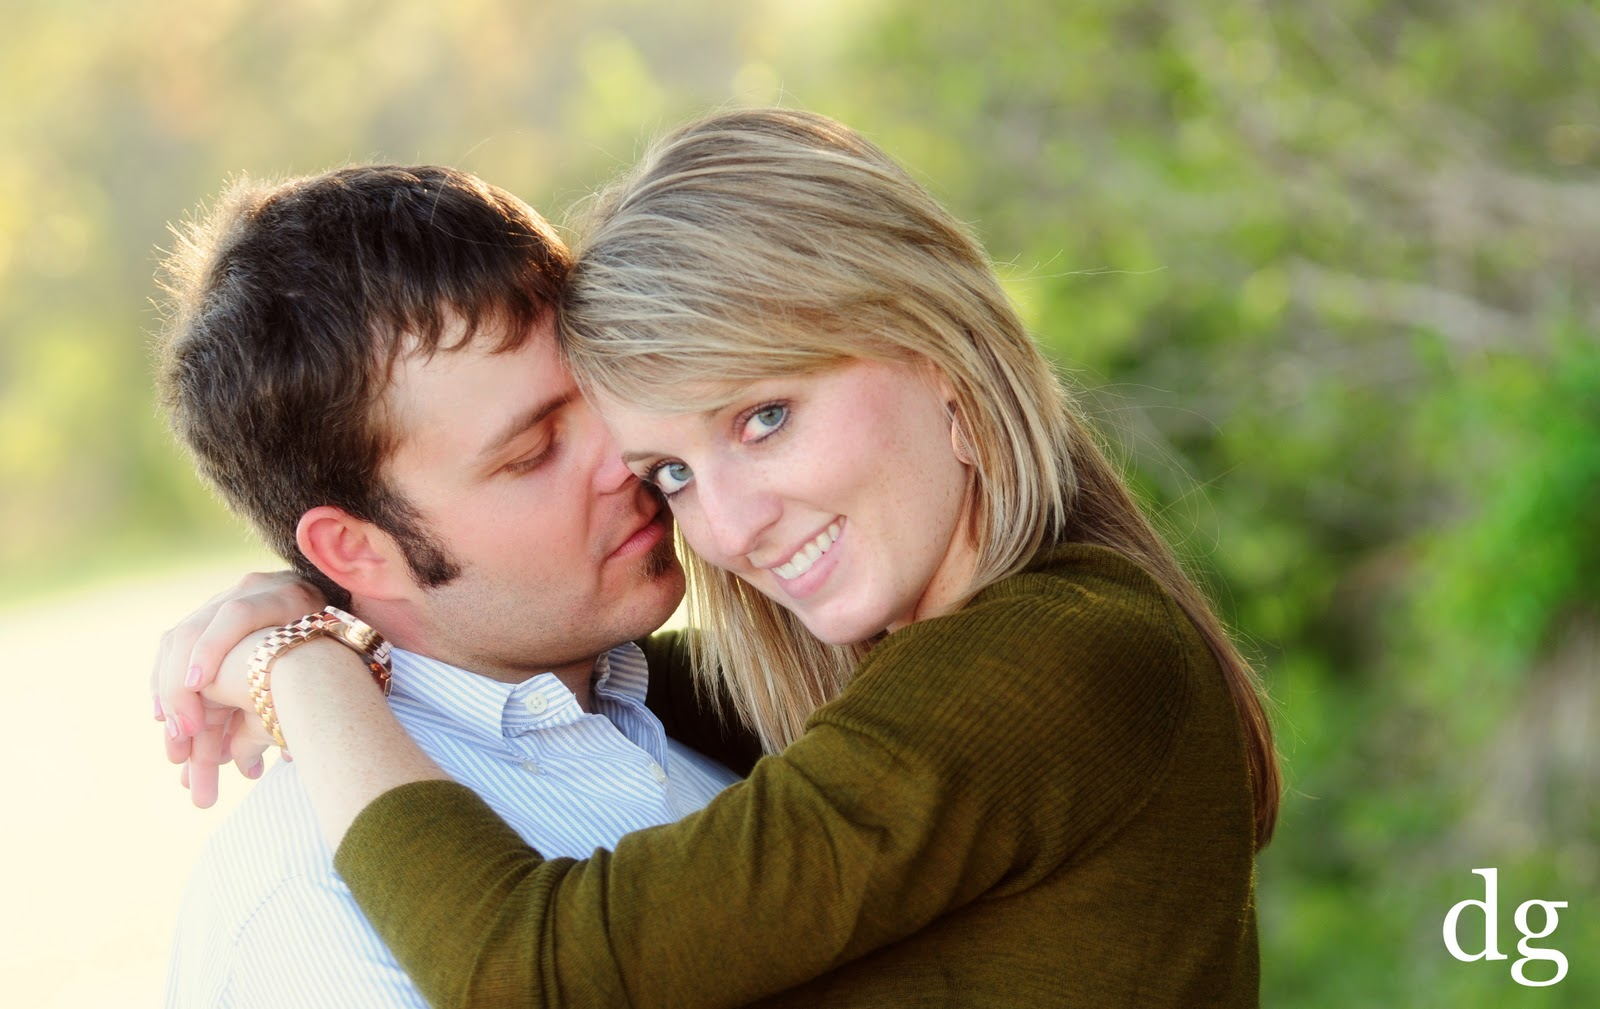 helotes senior personals Meet single women in dilley tx online & chat in the forums dhu is a 100% free dating site to find single women in dilley old single female here in helotes.